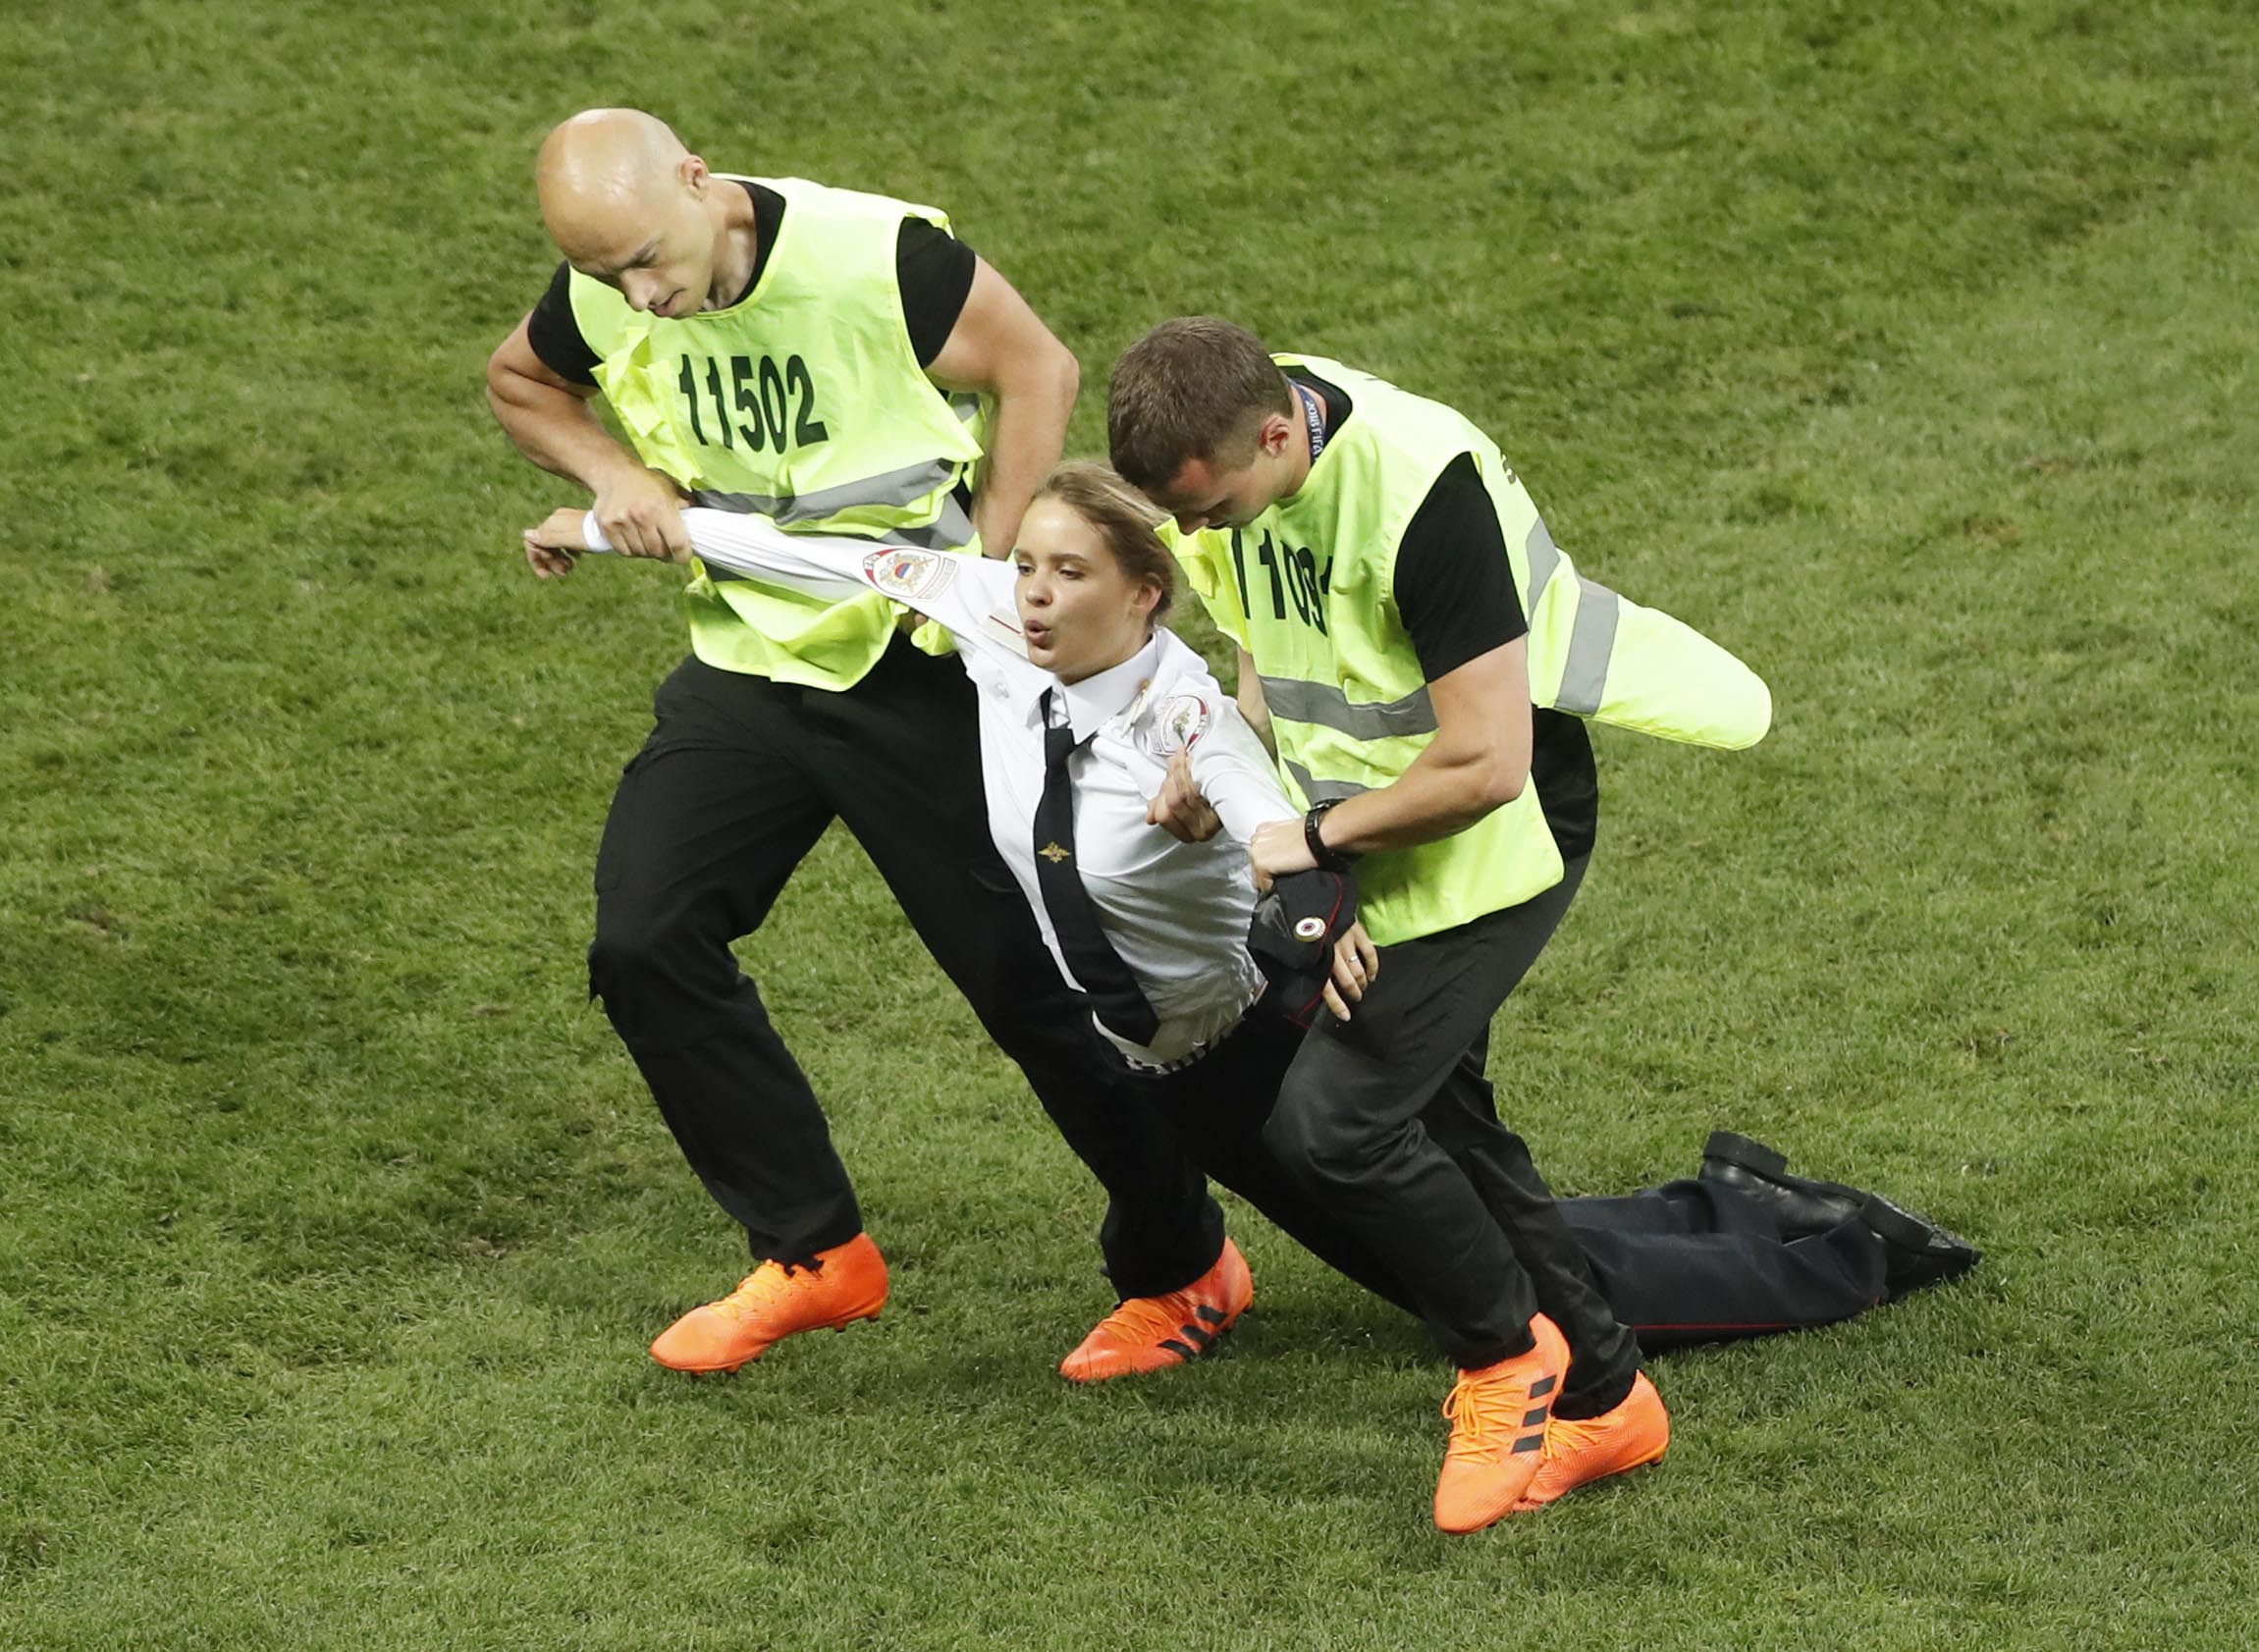 A woman is dragged away by stewards after running into the pitch during the final match between France and Croatia at the 2018 soccer World Cup in the Luzhniki Stadium in Moscow, Russia, Sunday, July 15, 2018. Photo: AP